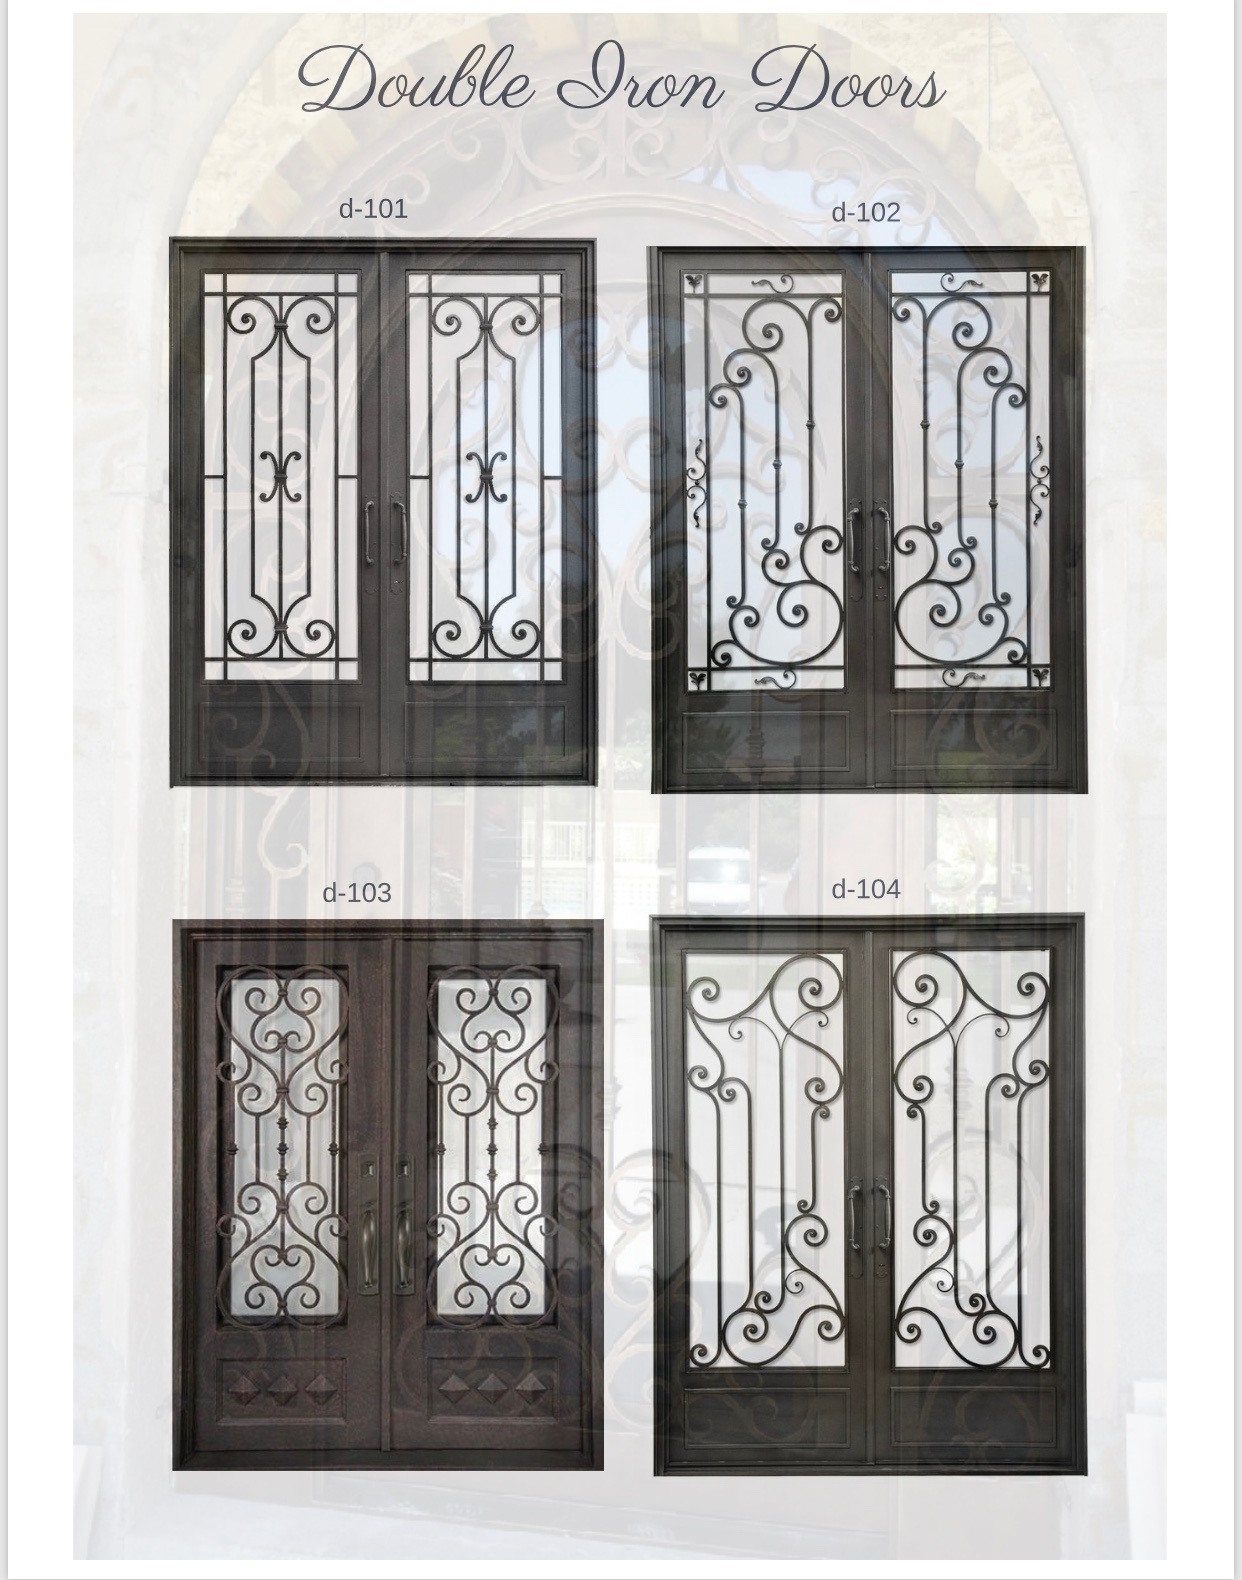 Online Catalog | SA Custom Iron Door & Fence